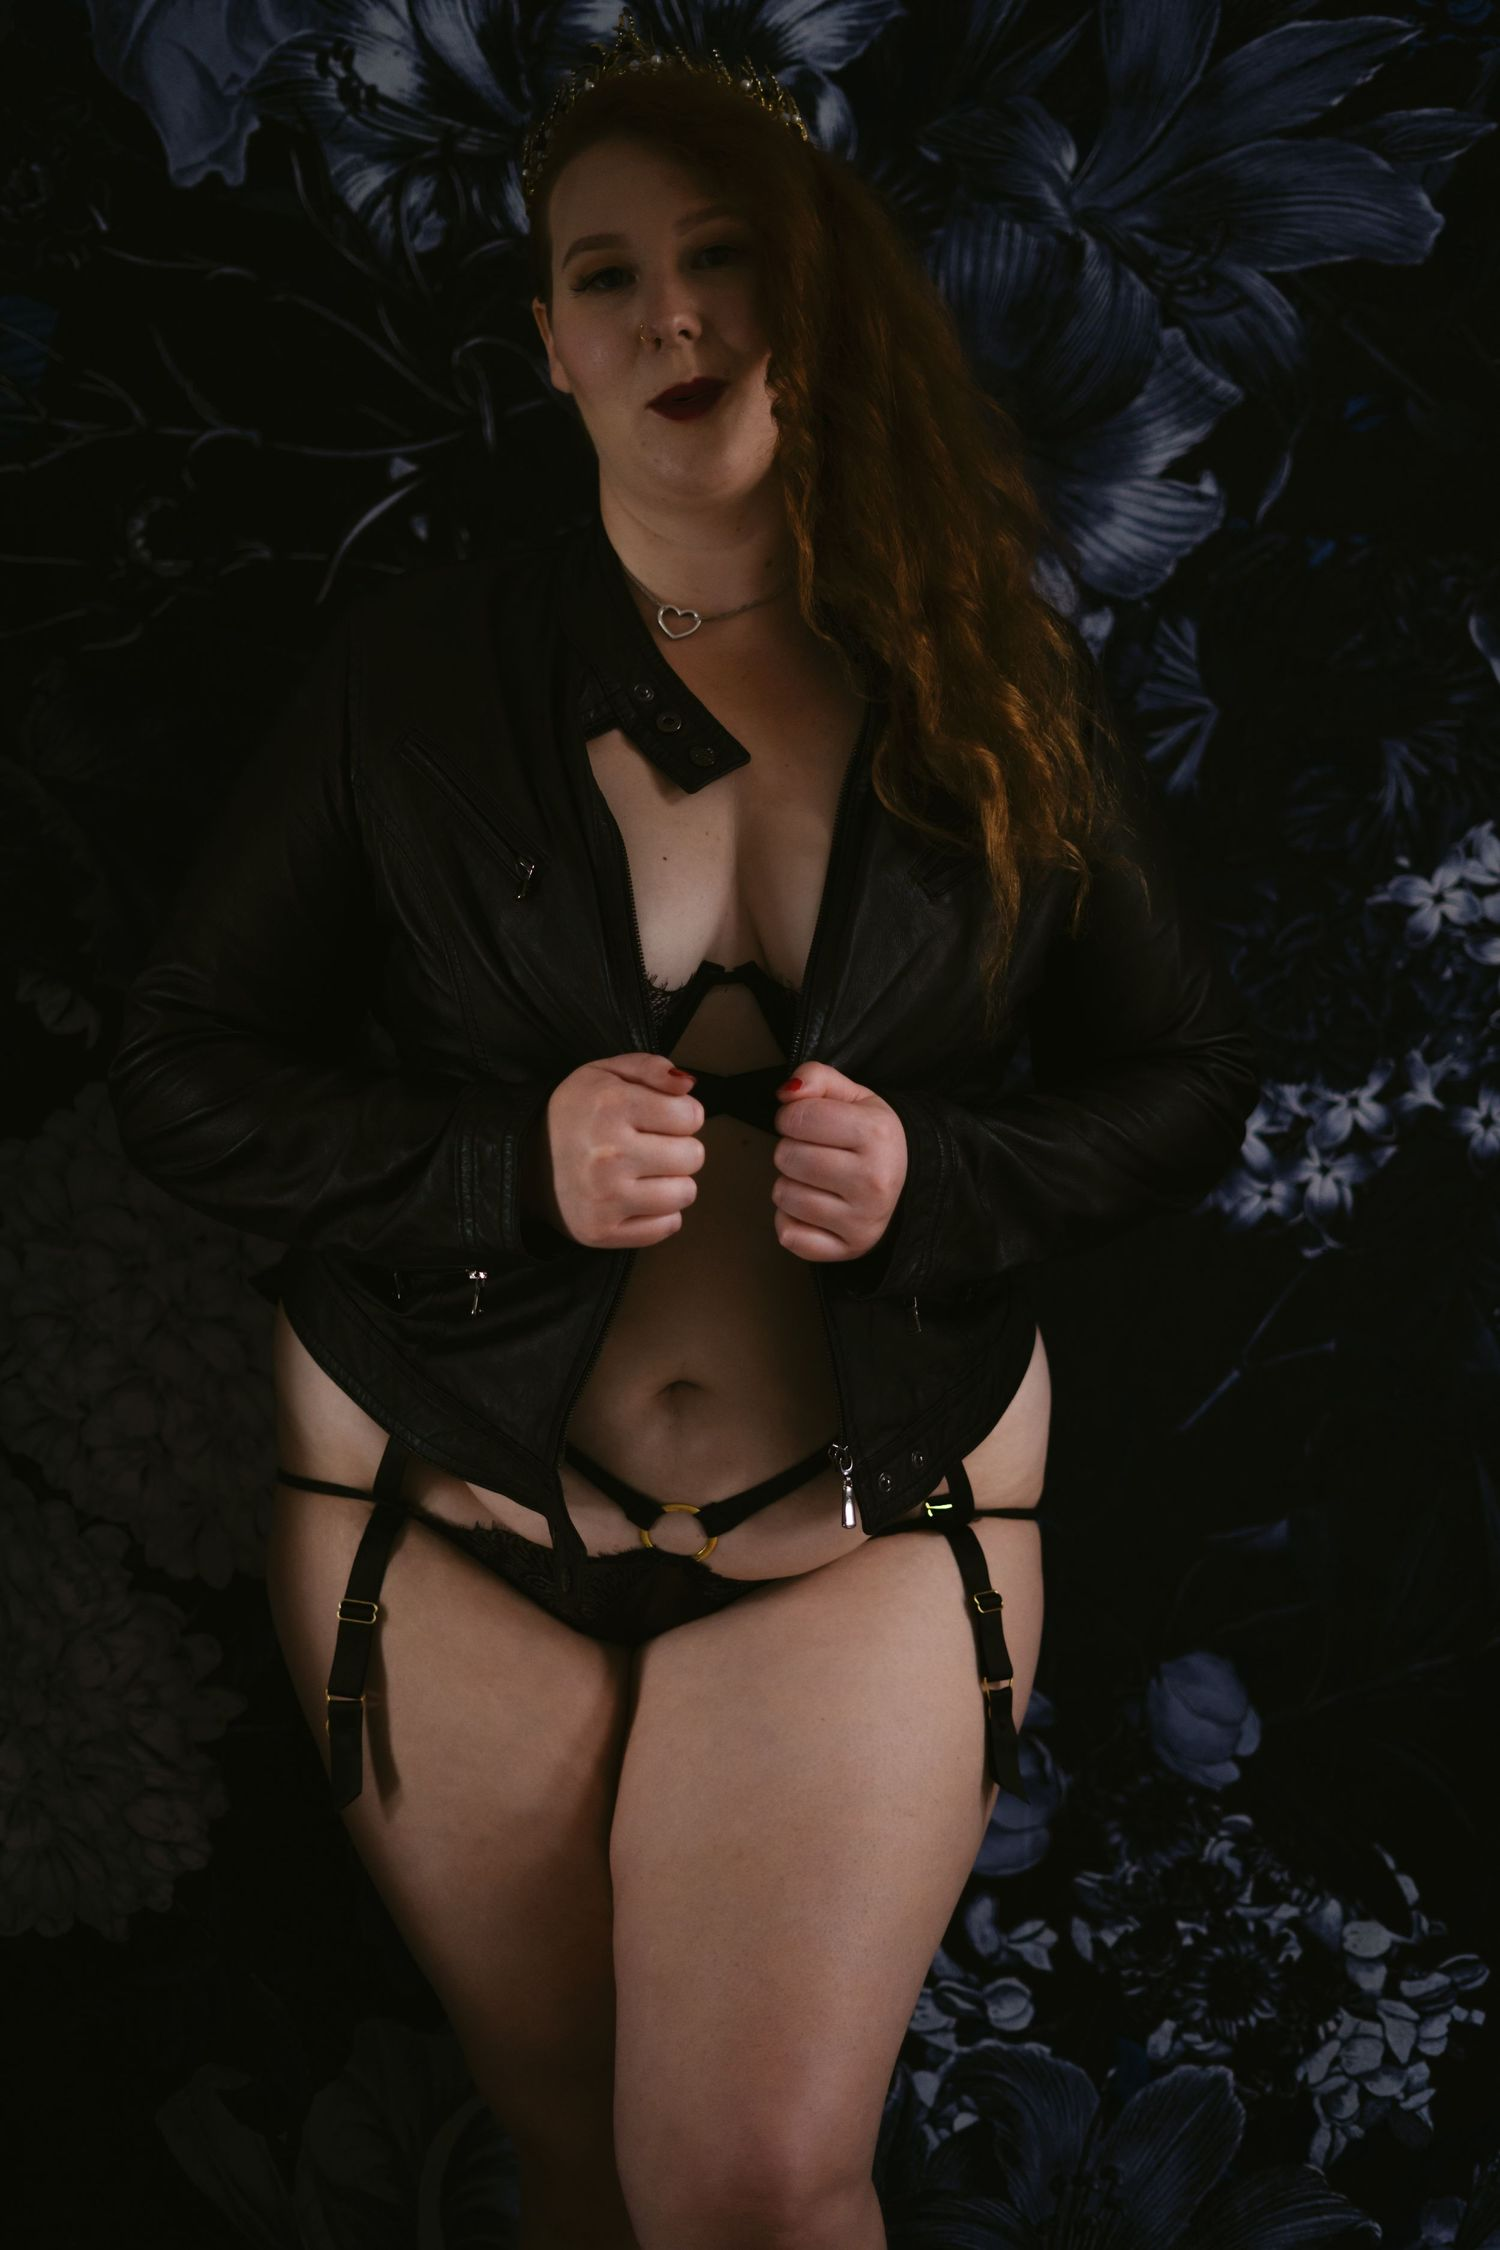 A woman in a black leather jacket and black lingerie